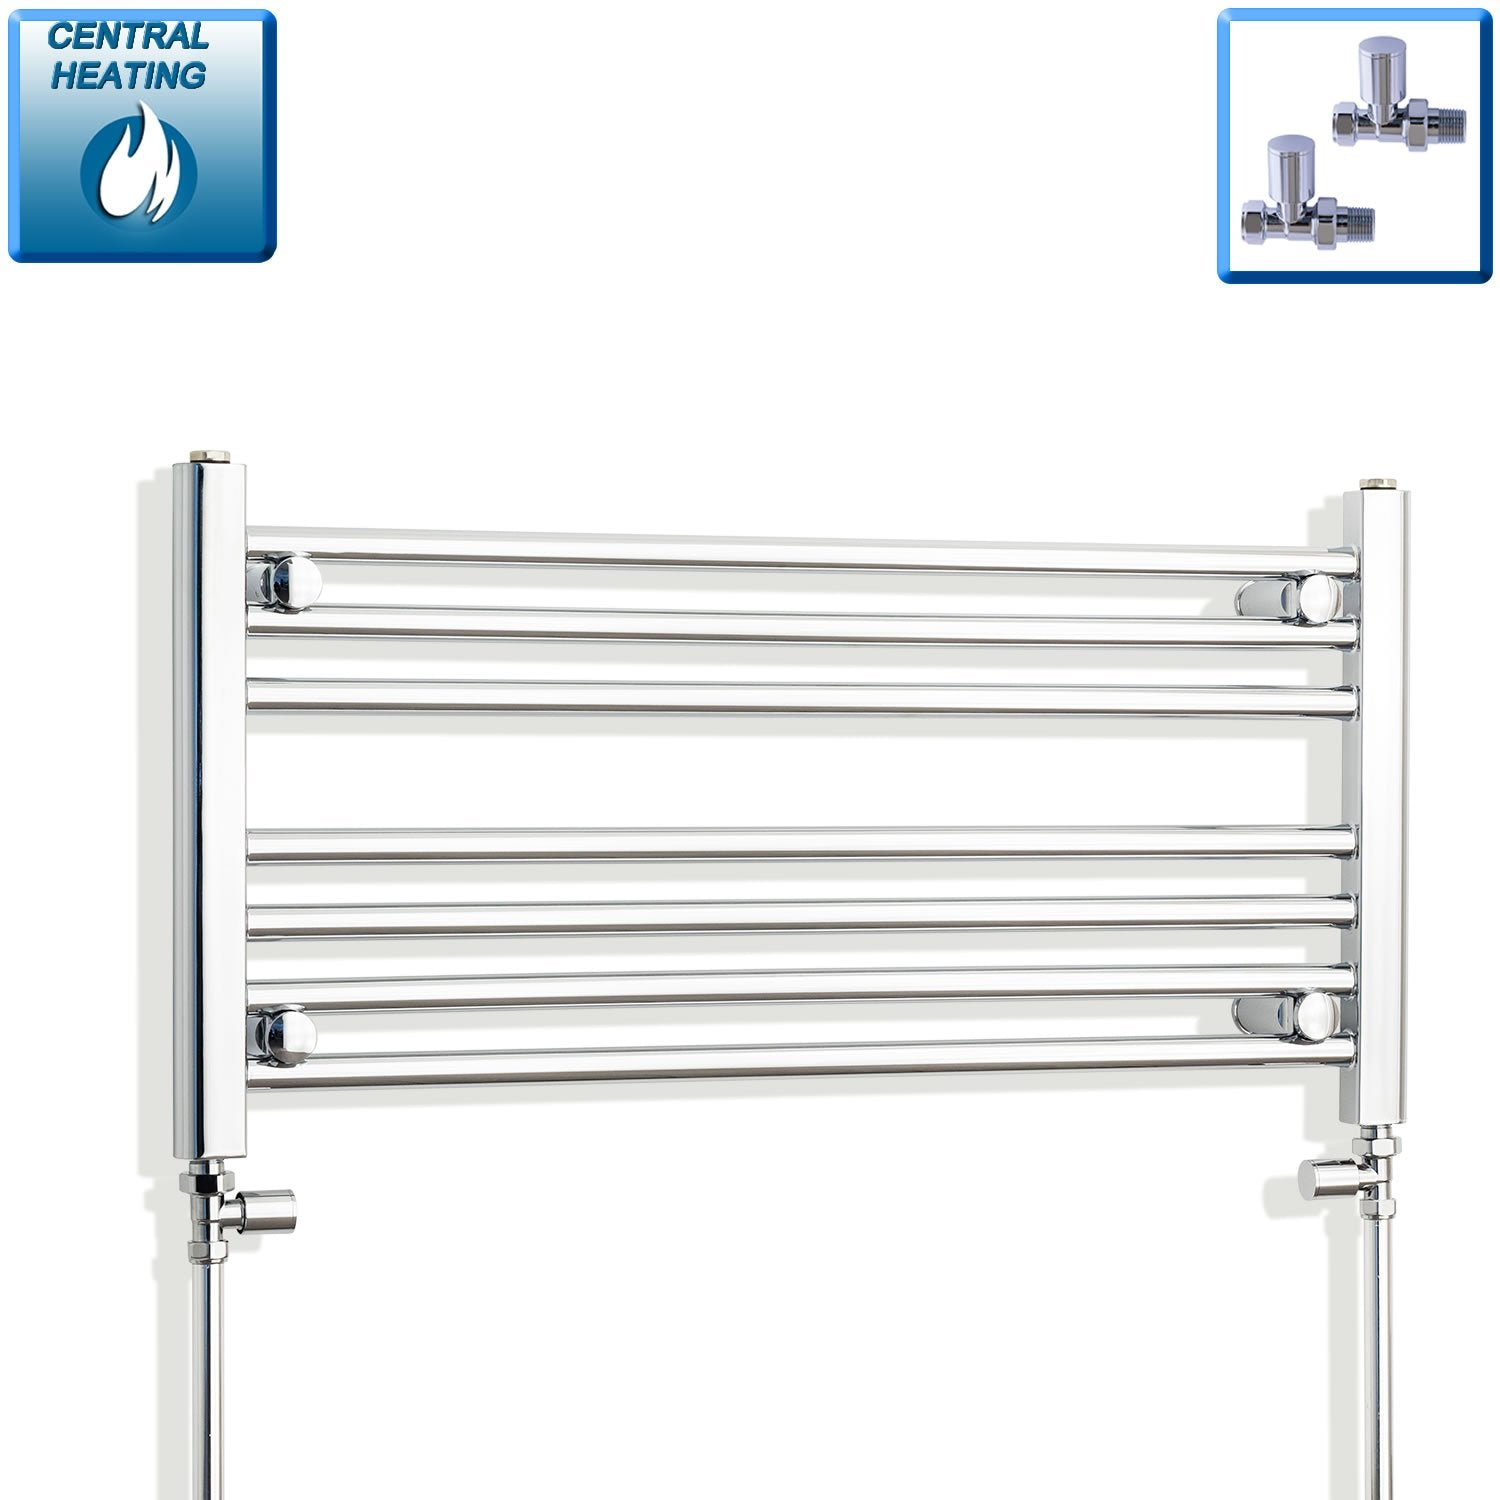 900mm Wide 400mm High Flat Chrome Heated Towel Rail Radiator HTR,With Straight Valve